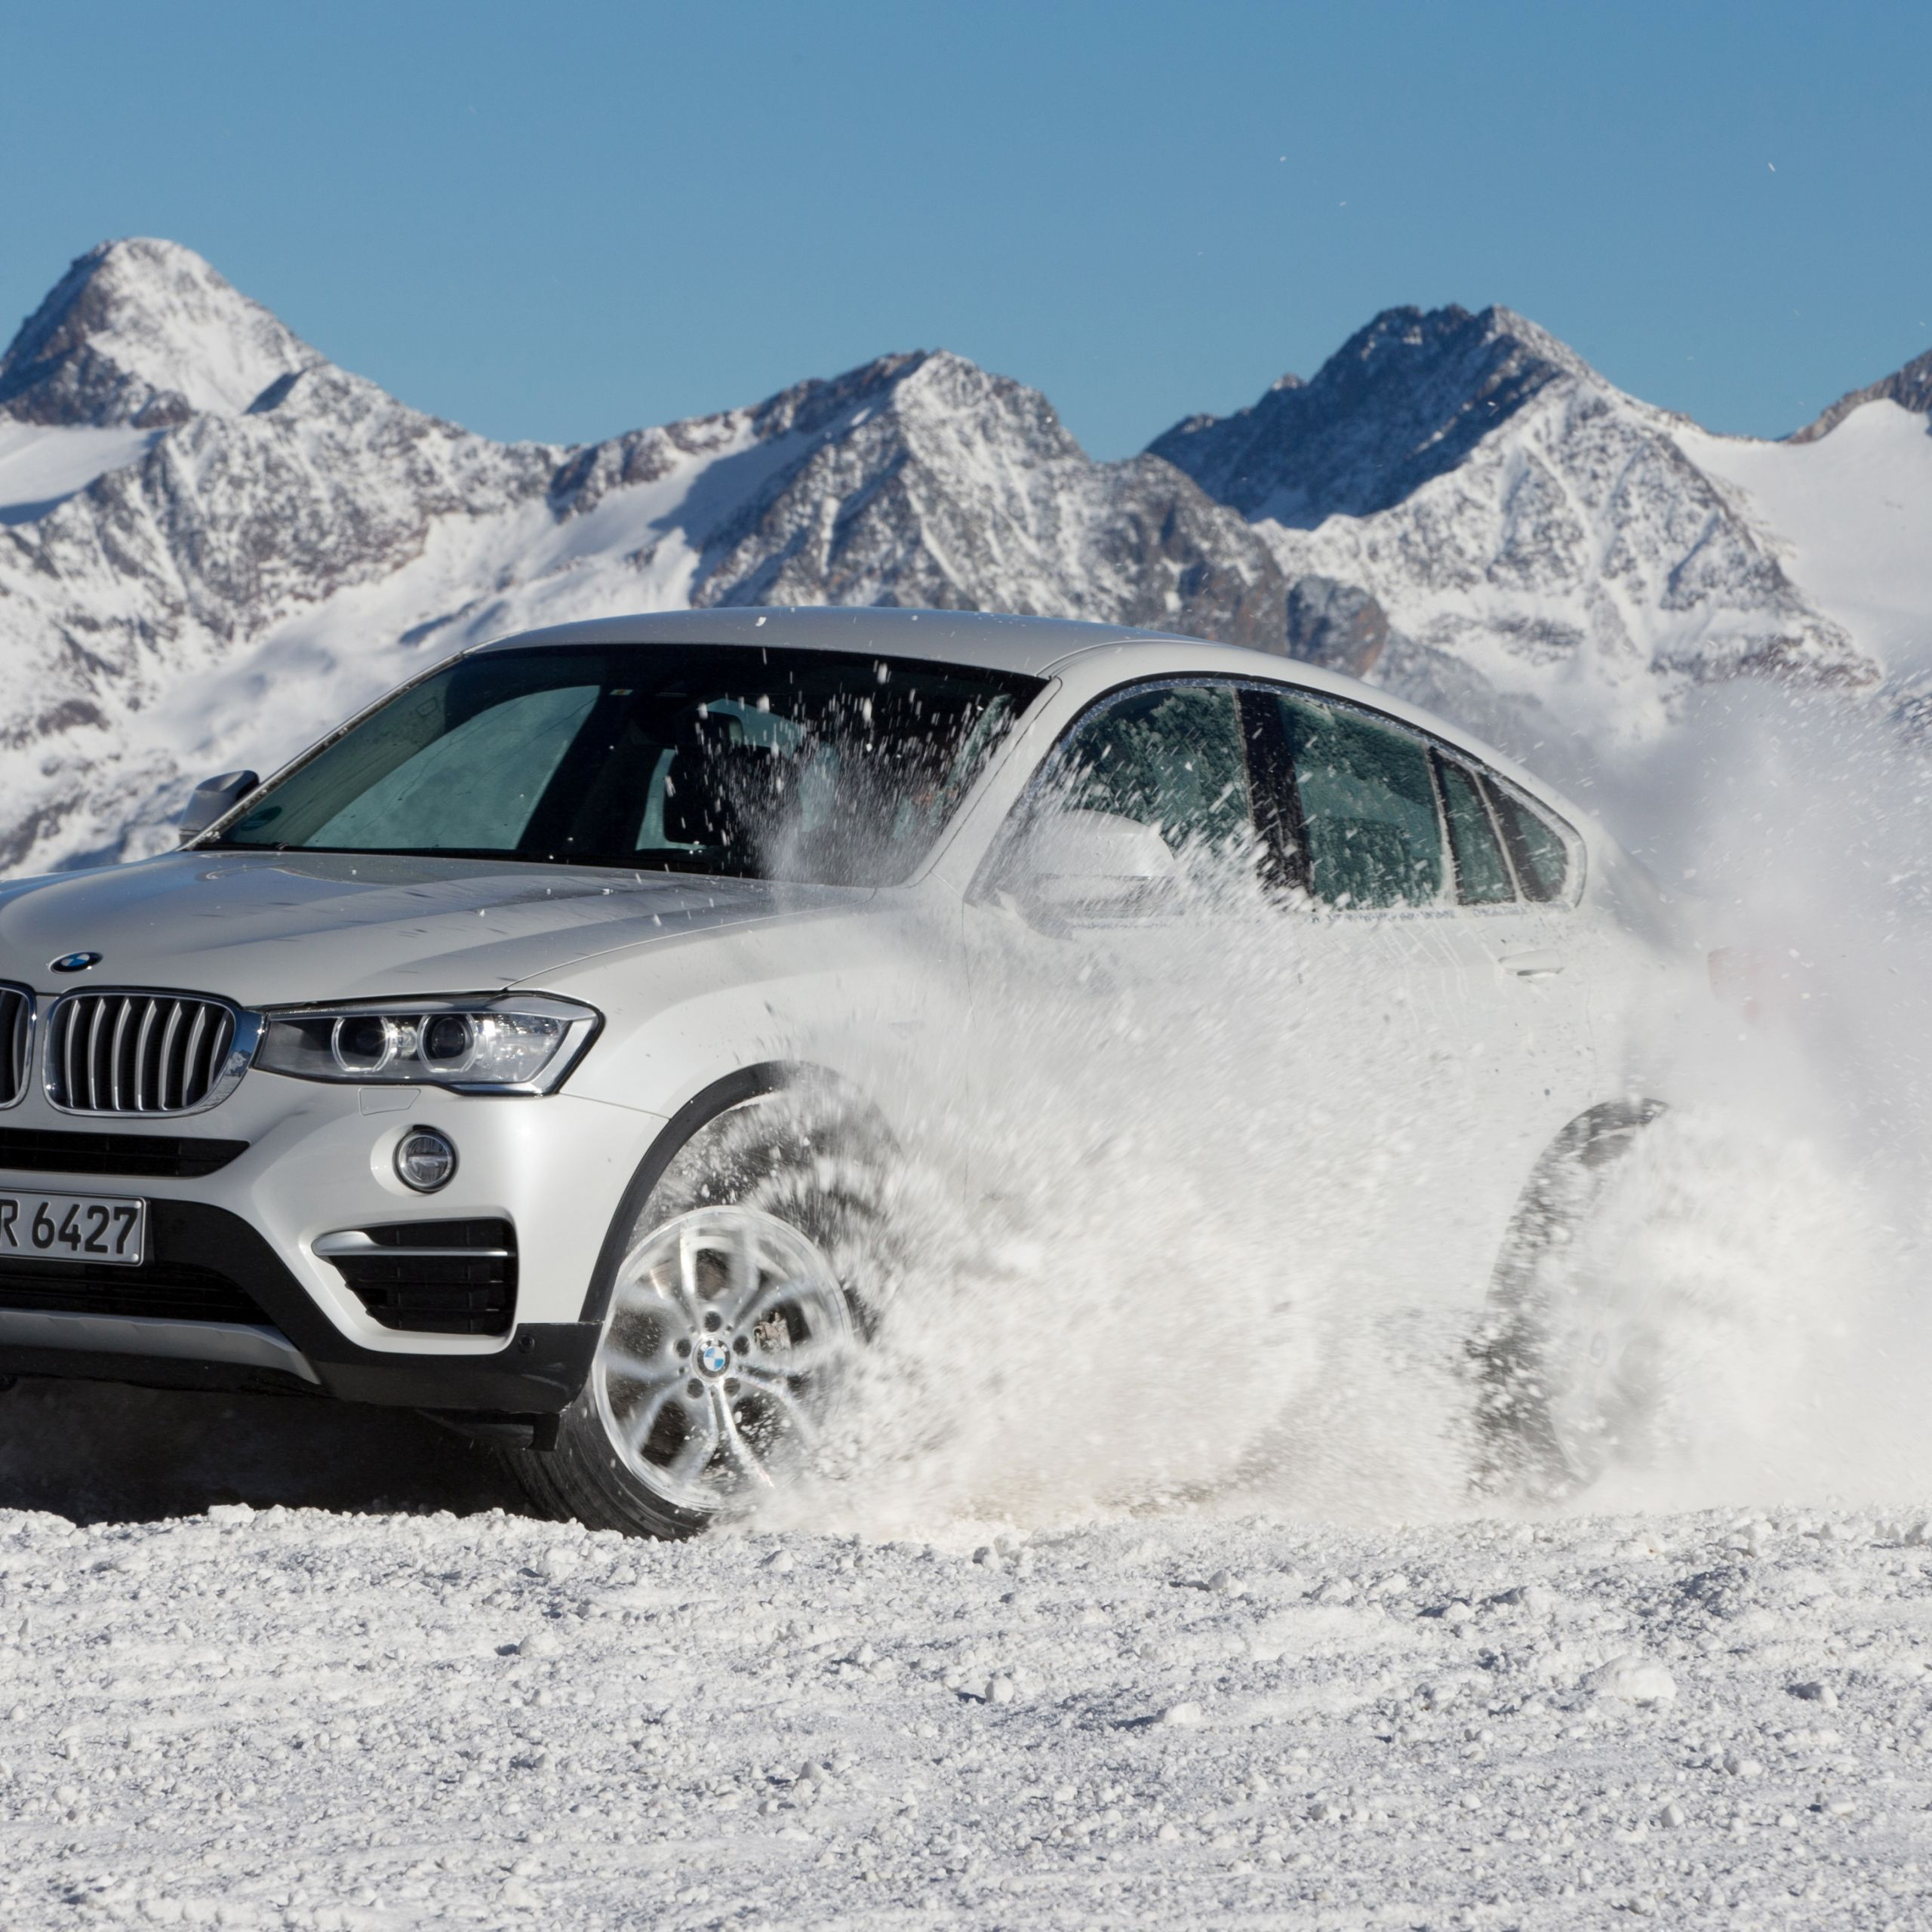 Bmw X4 2016 Elegant 2016 Bmw X4 2 0d Xdrive Review Baby X6 for the Price Of the